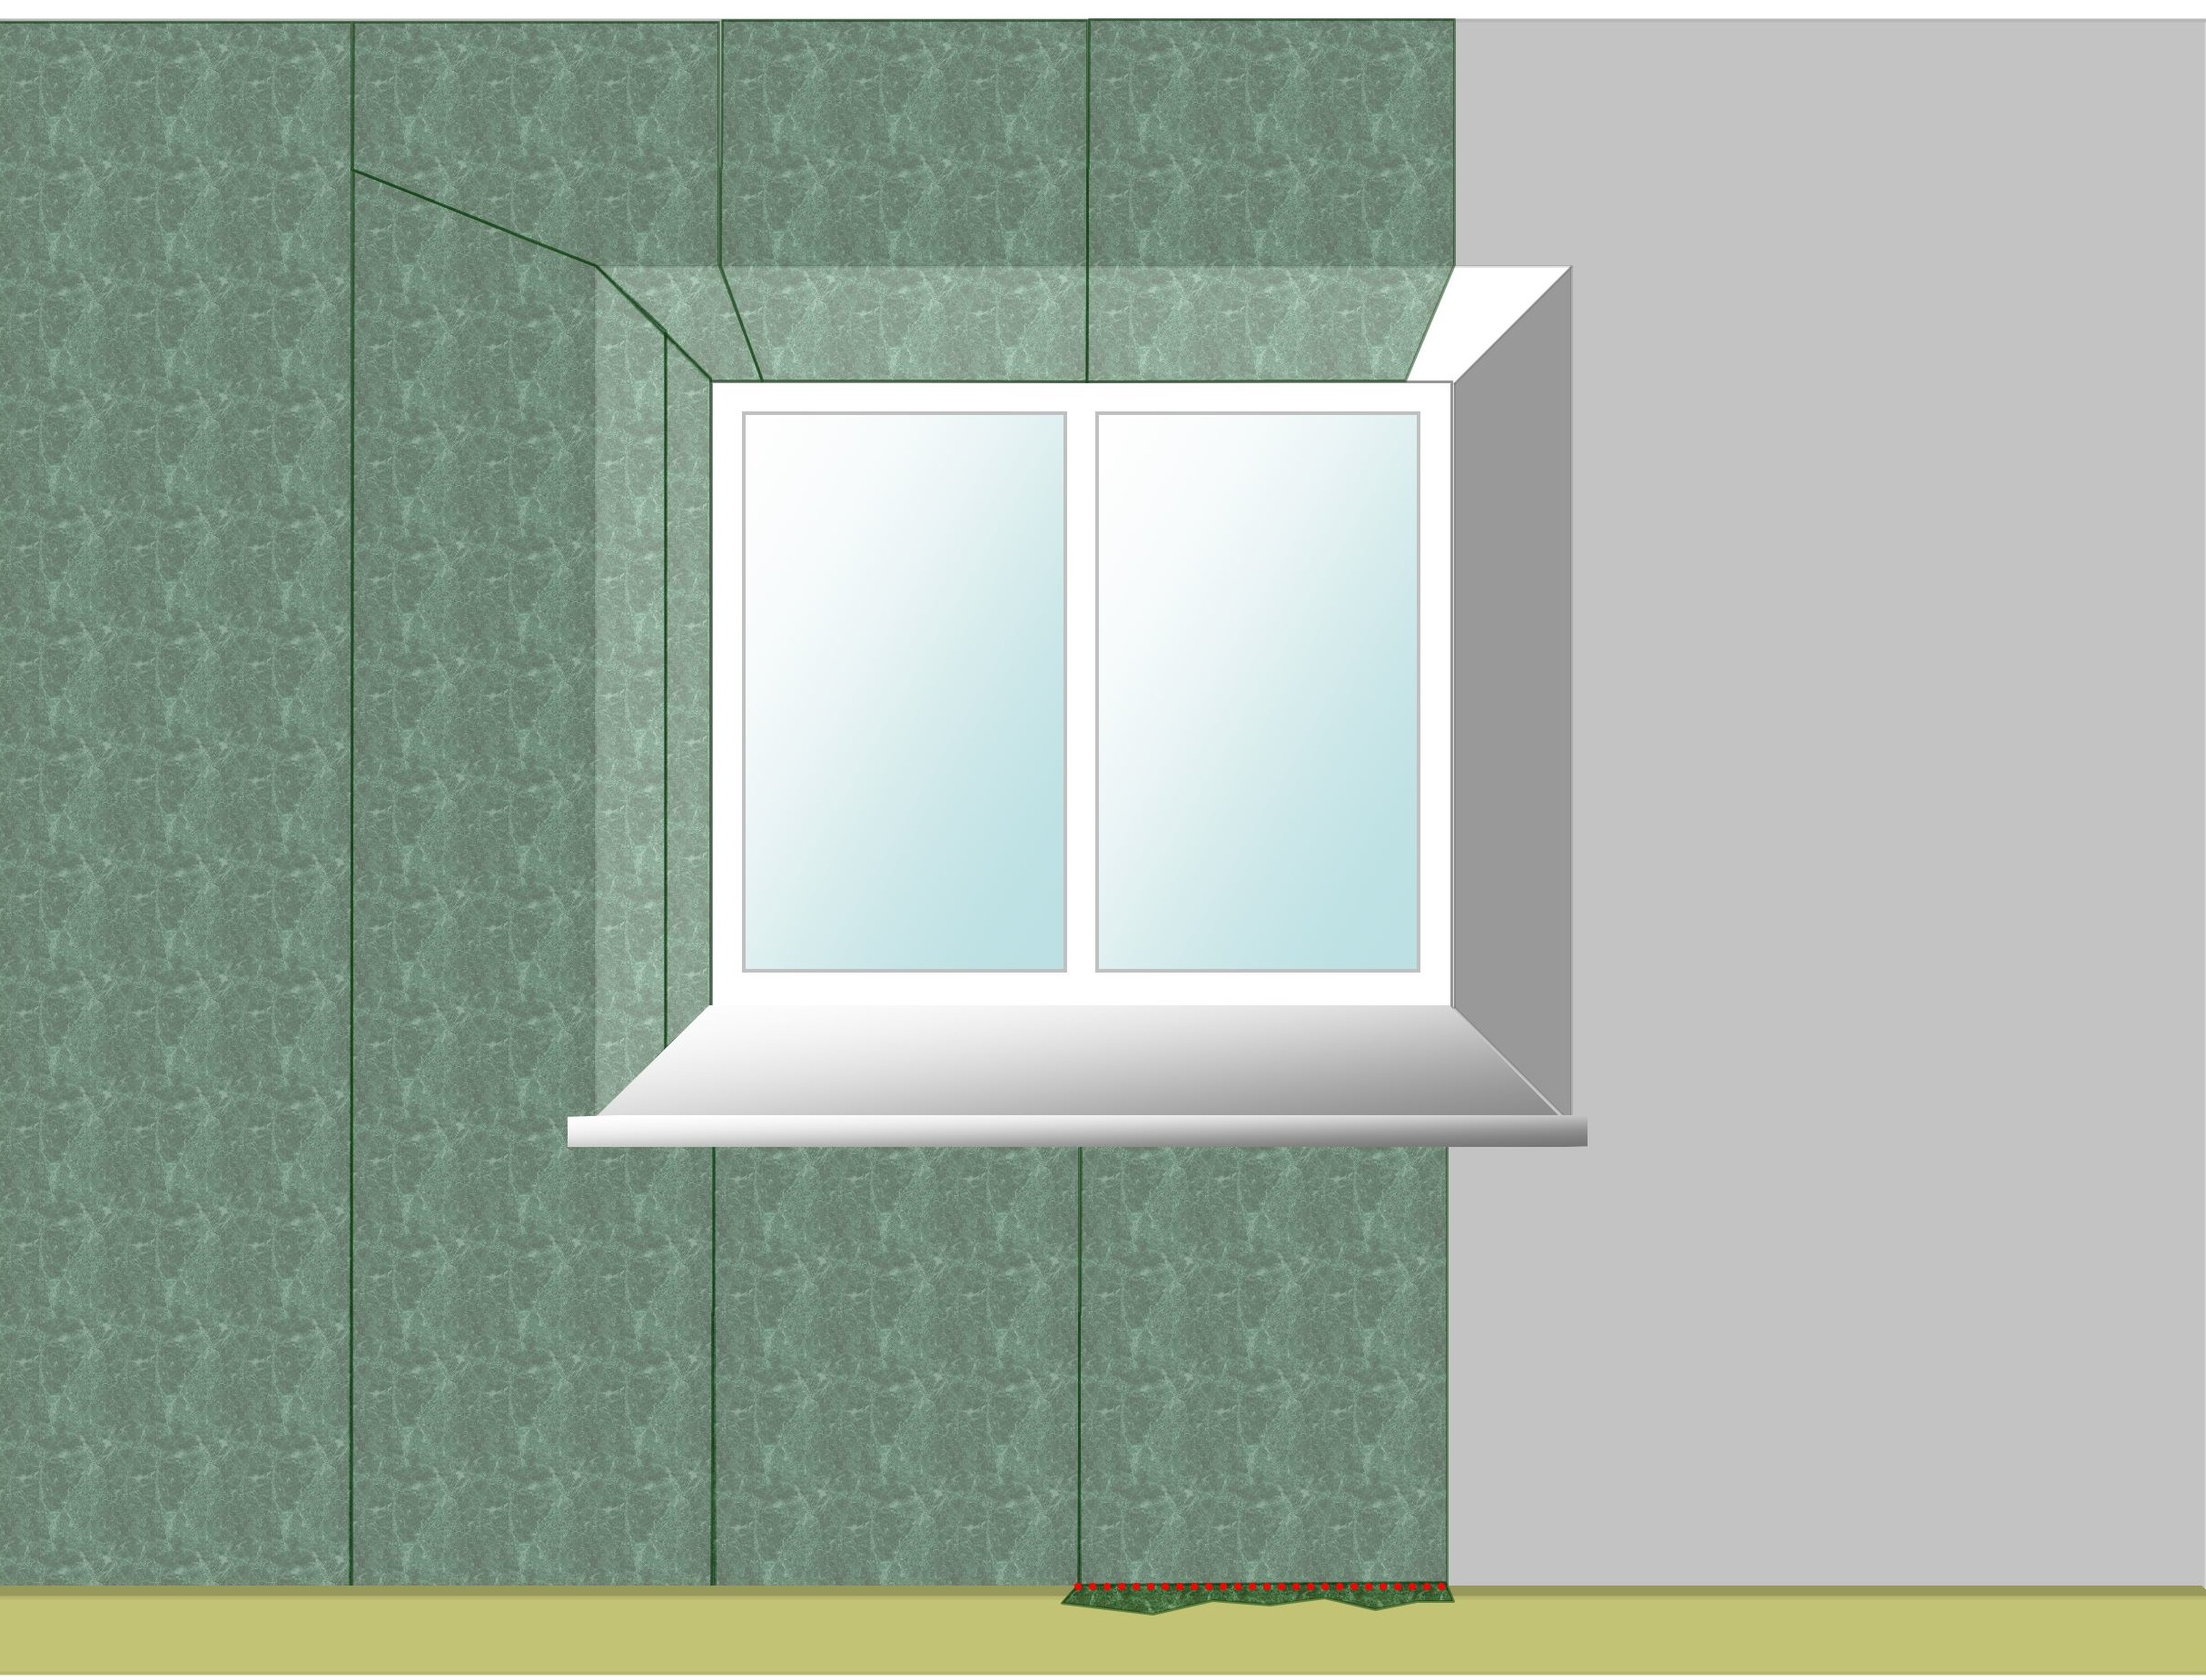 Wallpapering around a window for Wallpapering a wall